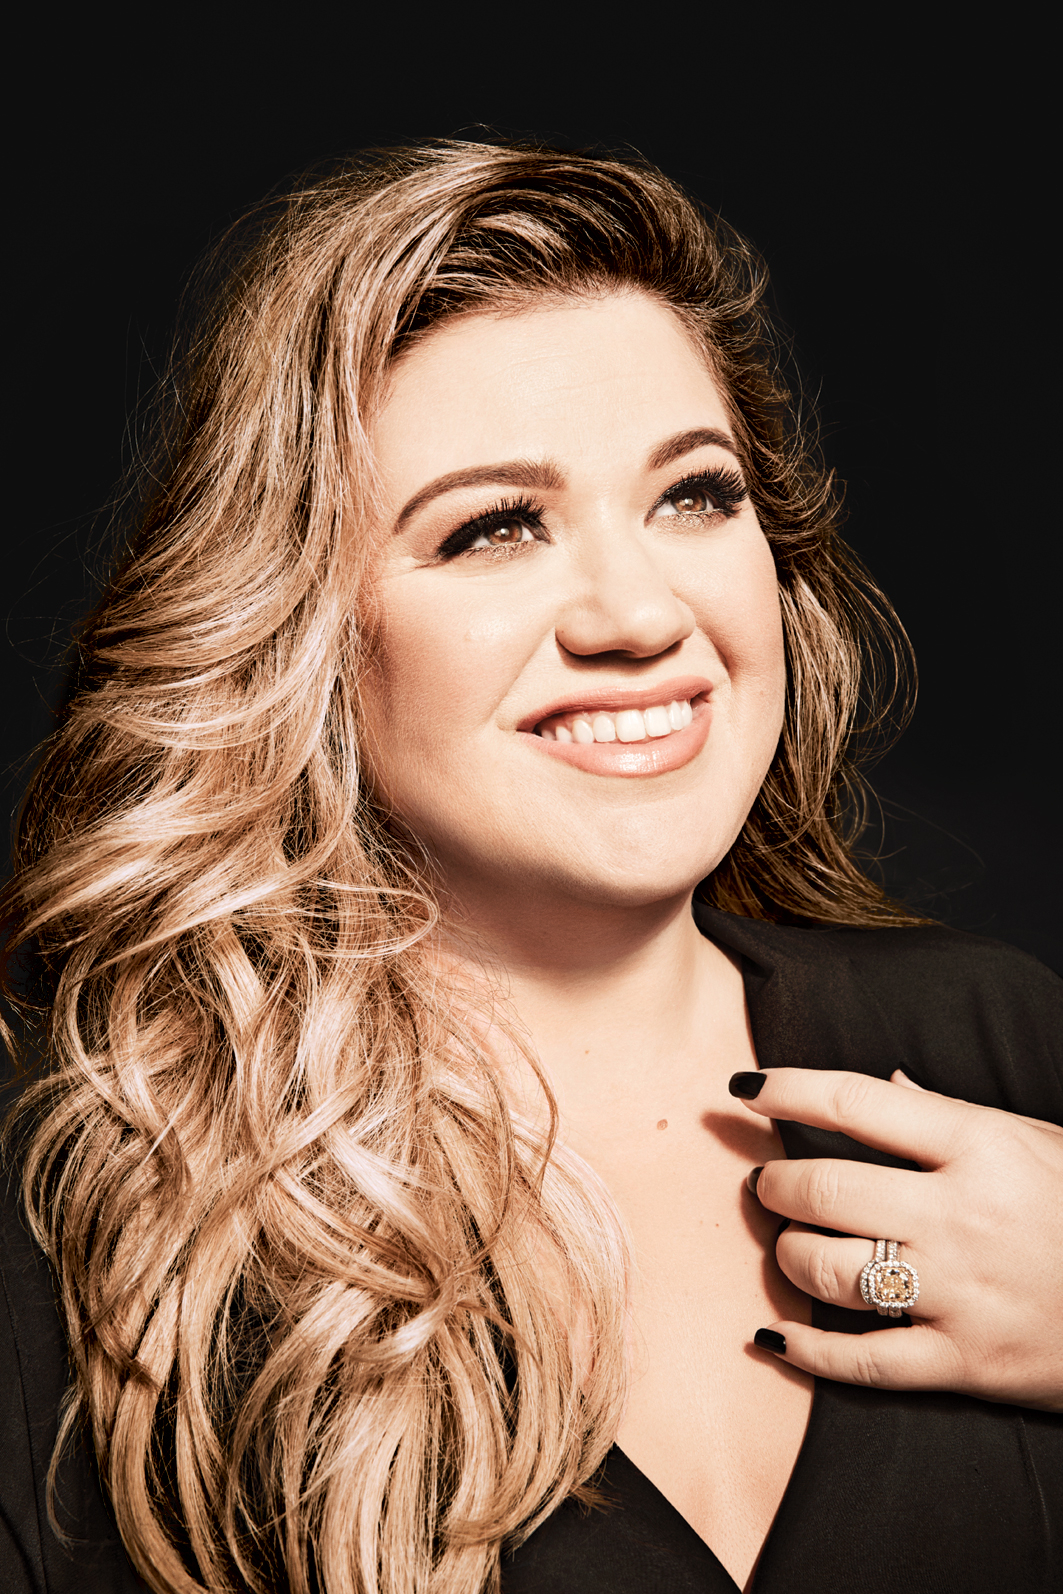 Photo Kelly Clarkson nudes (67 foto and video), Pussy, Sideboobs, Selfie, underwear 2018